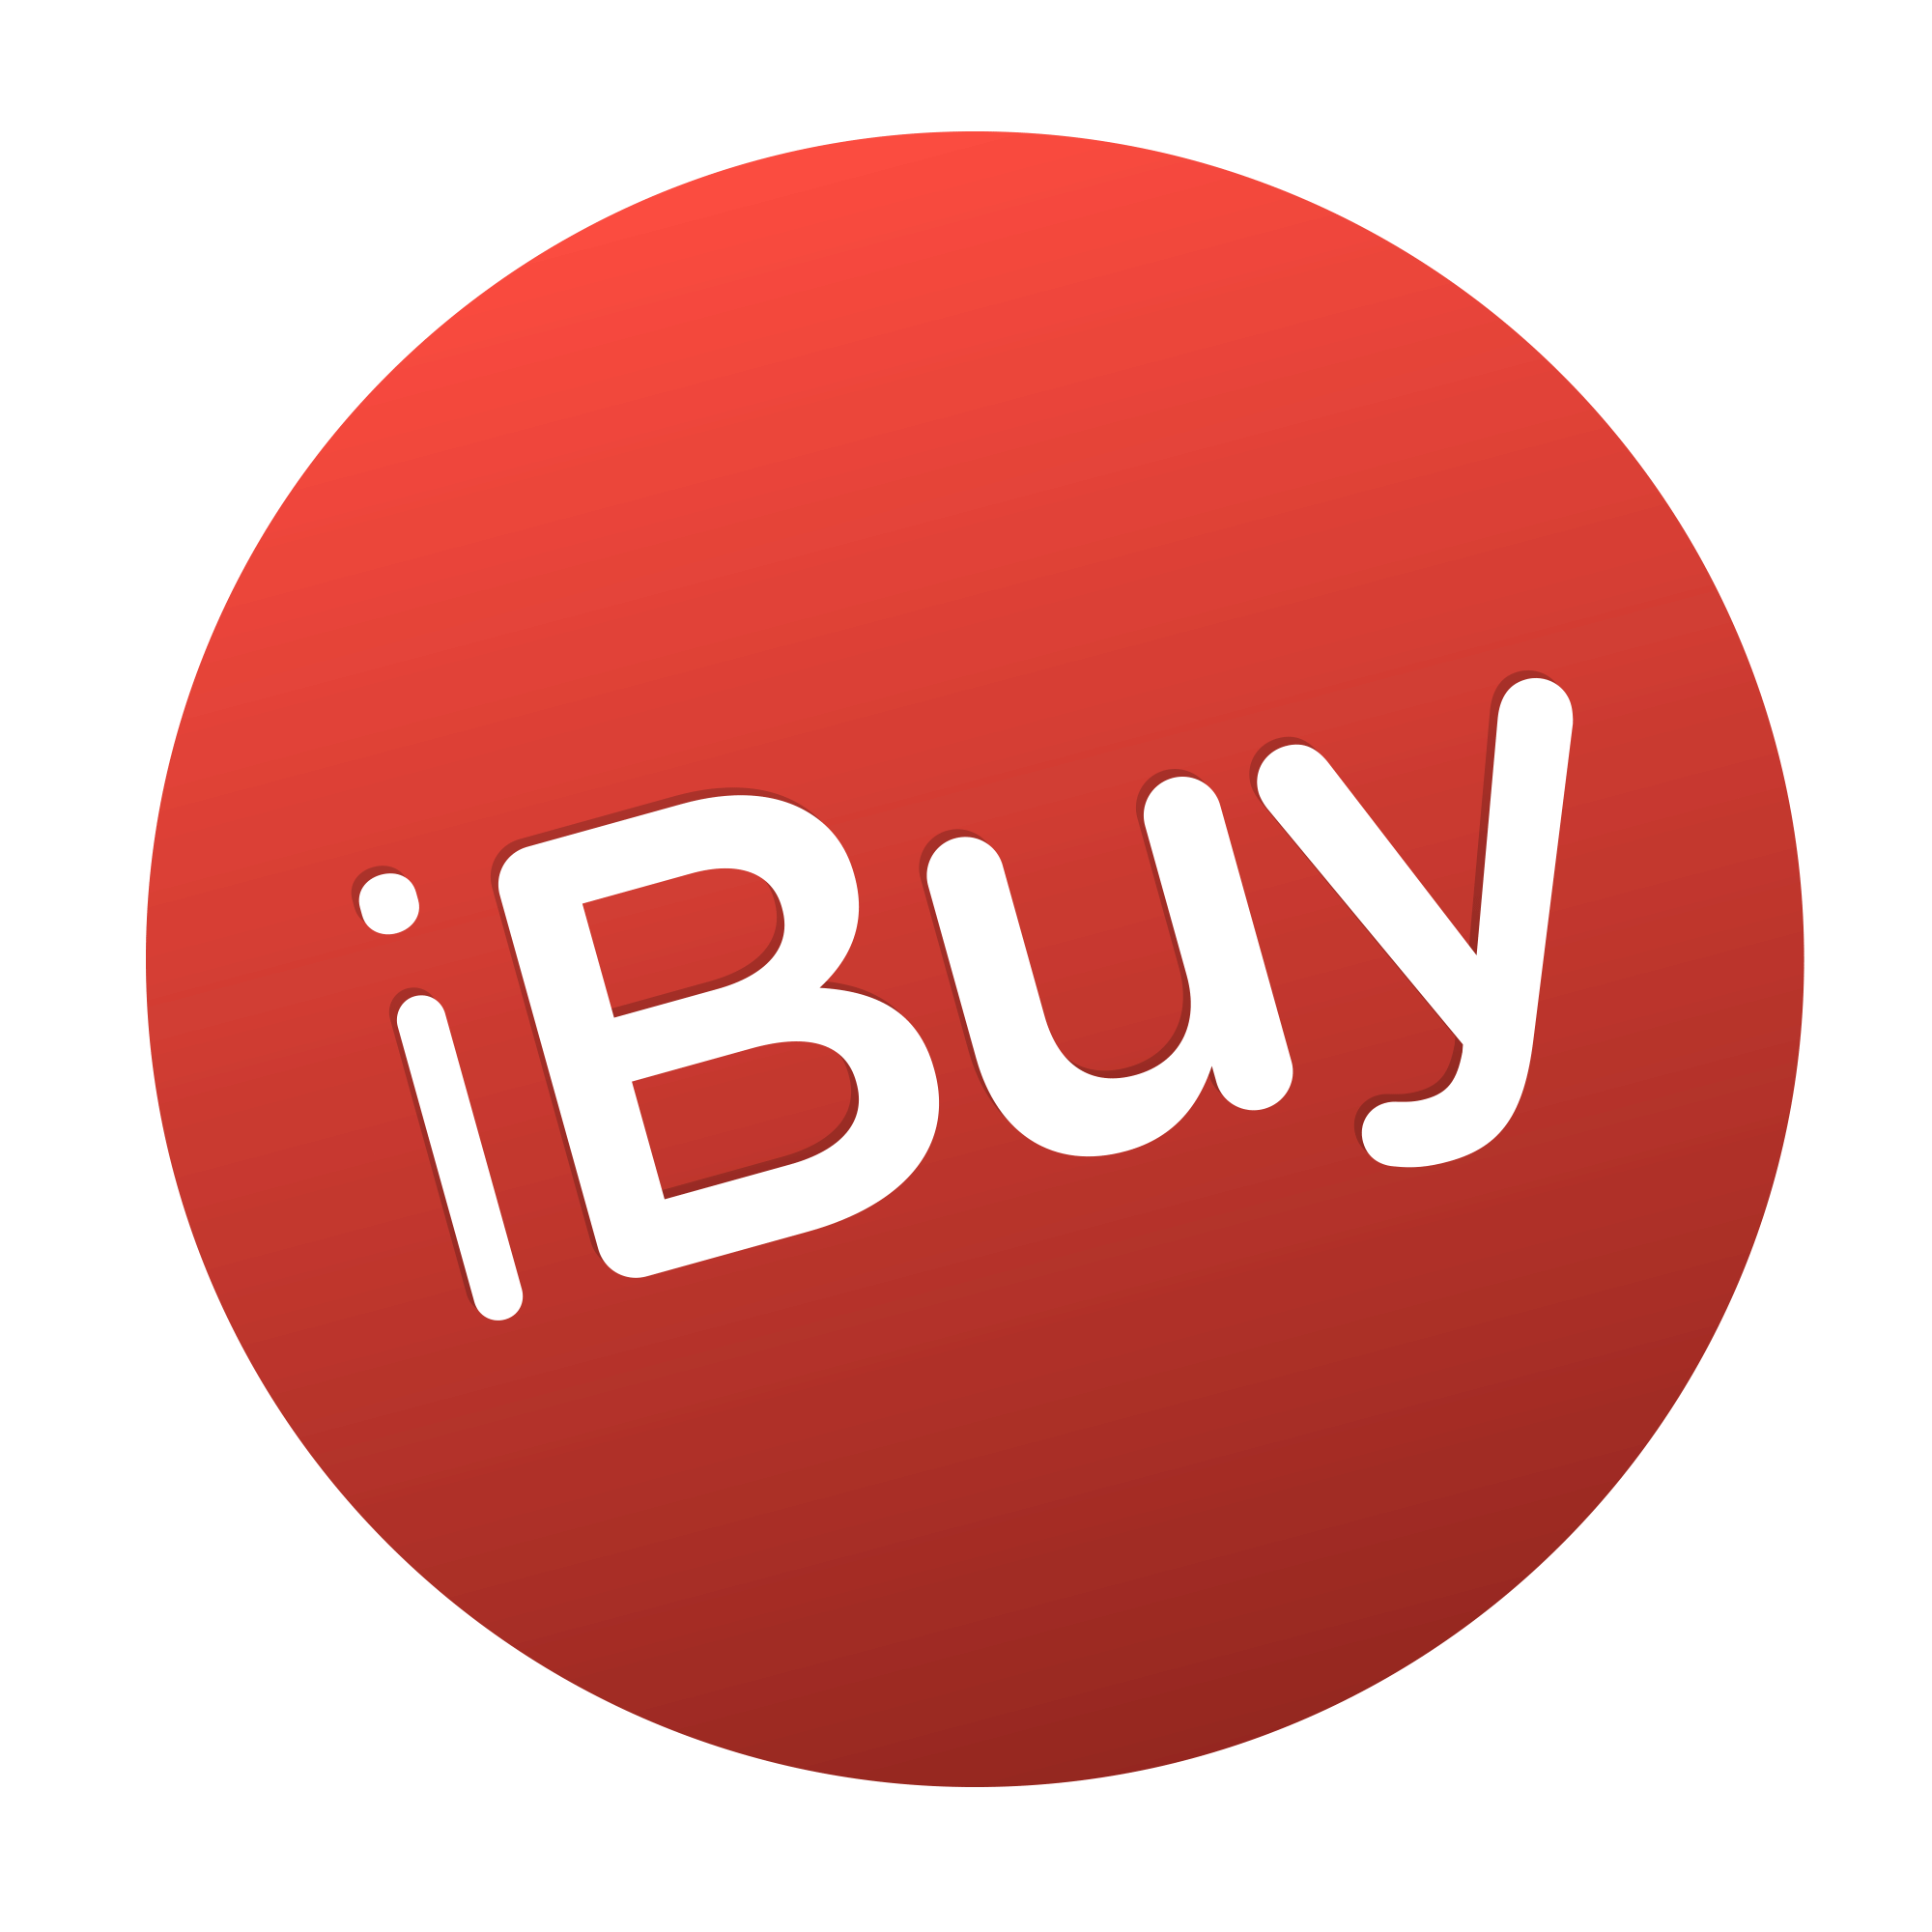 iBuyFireplaces About Us Page